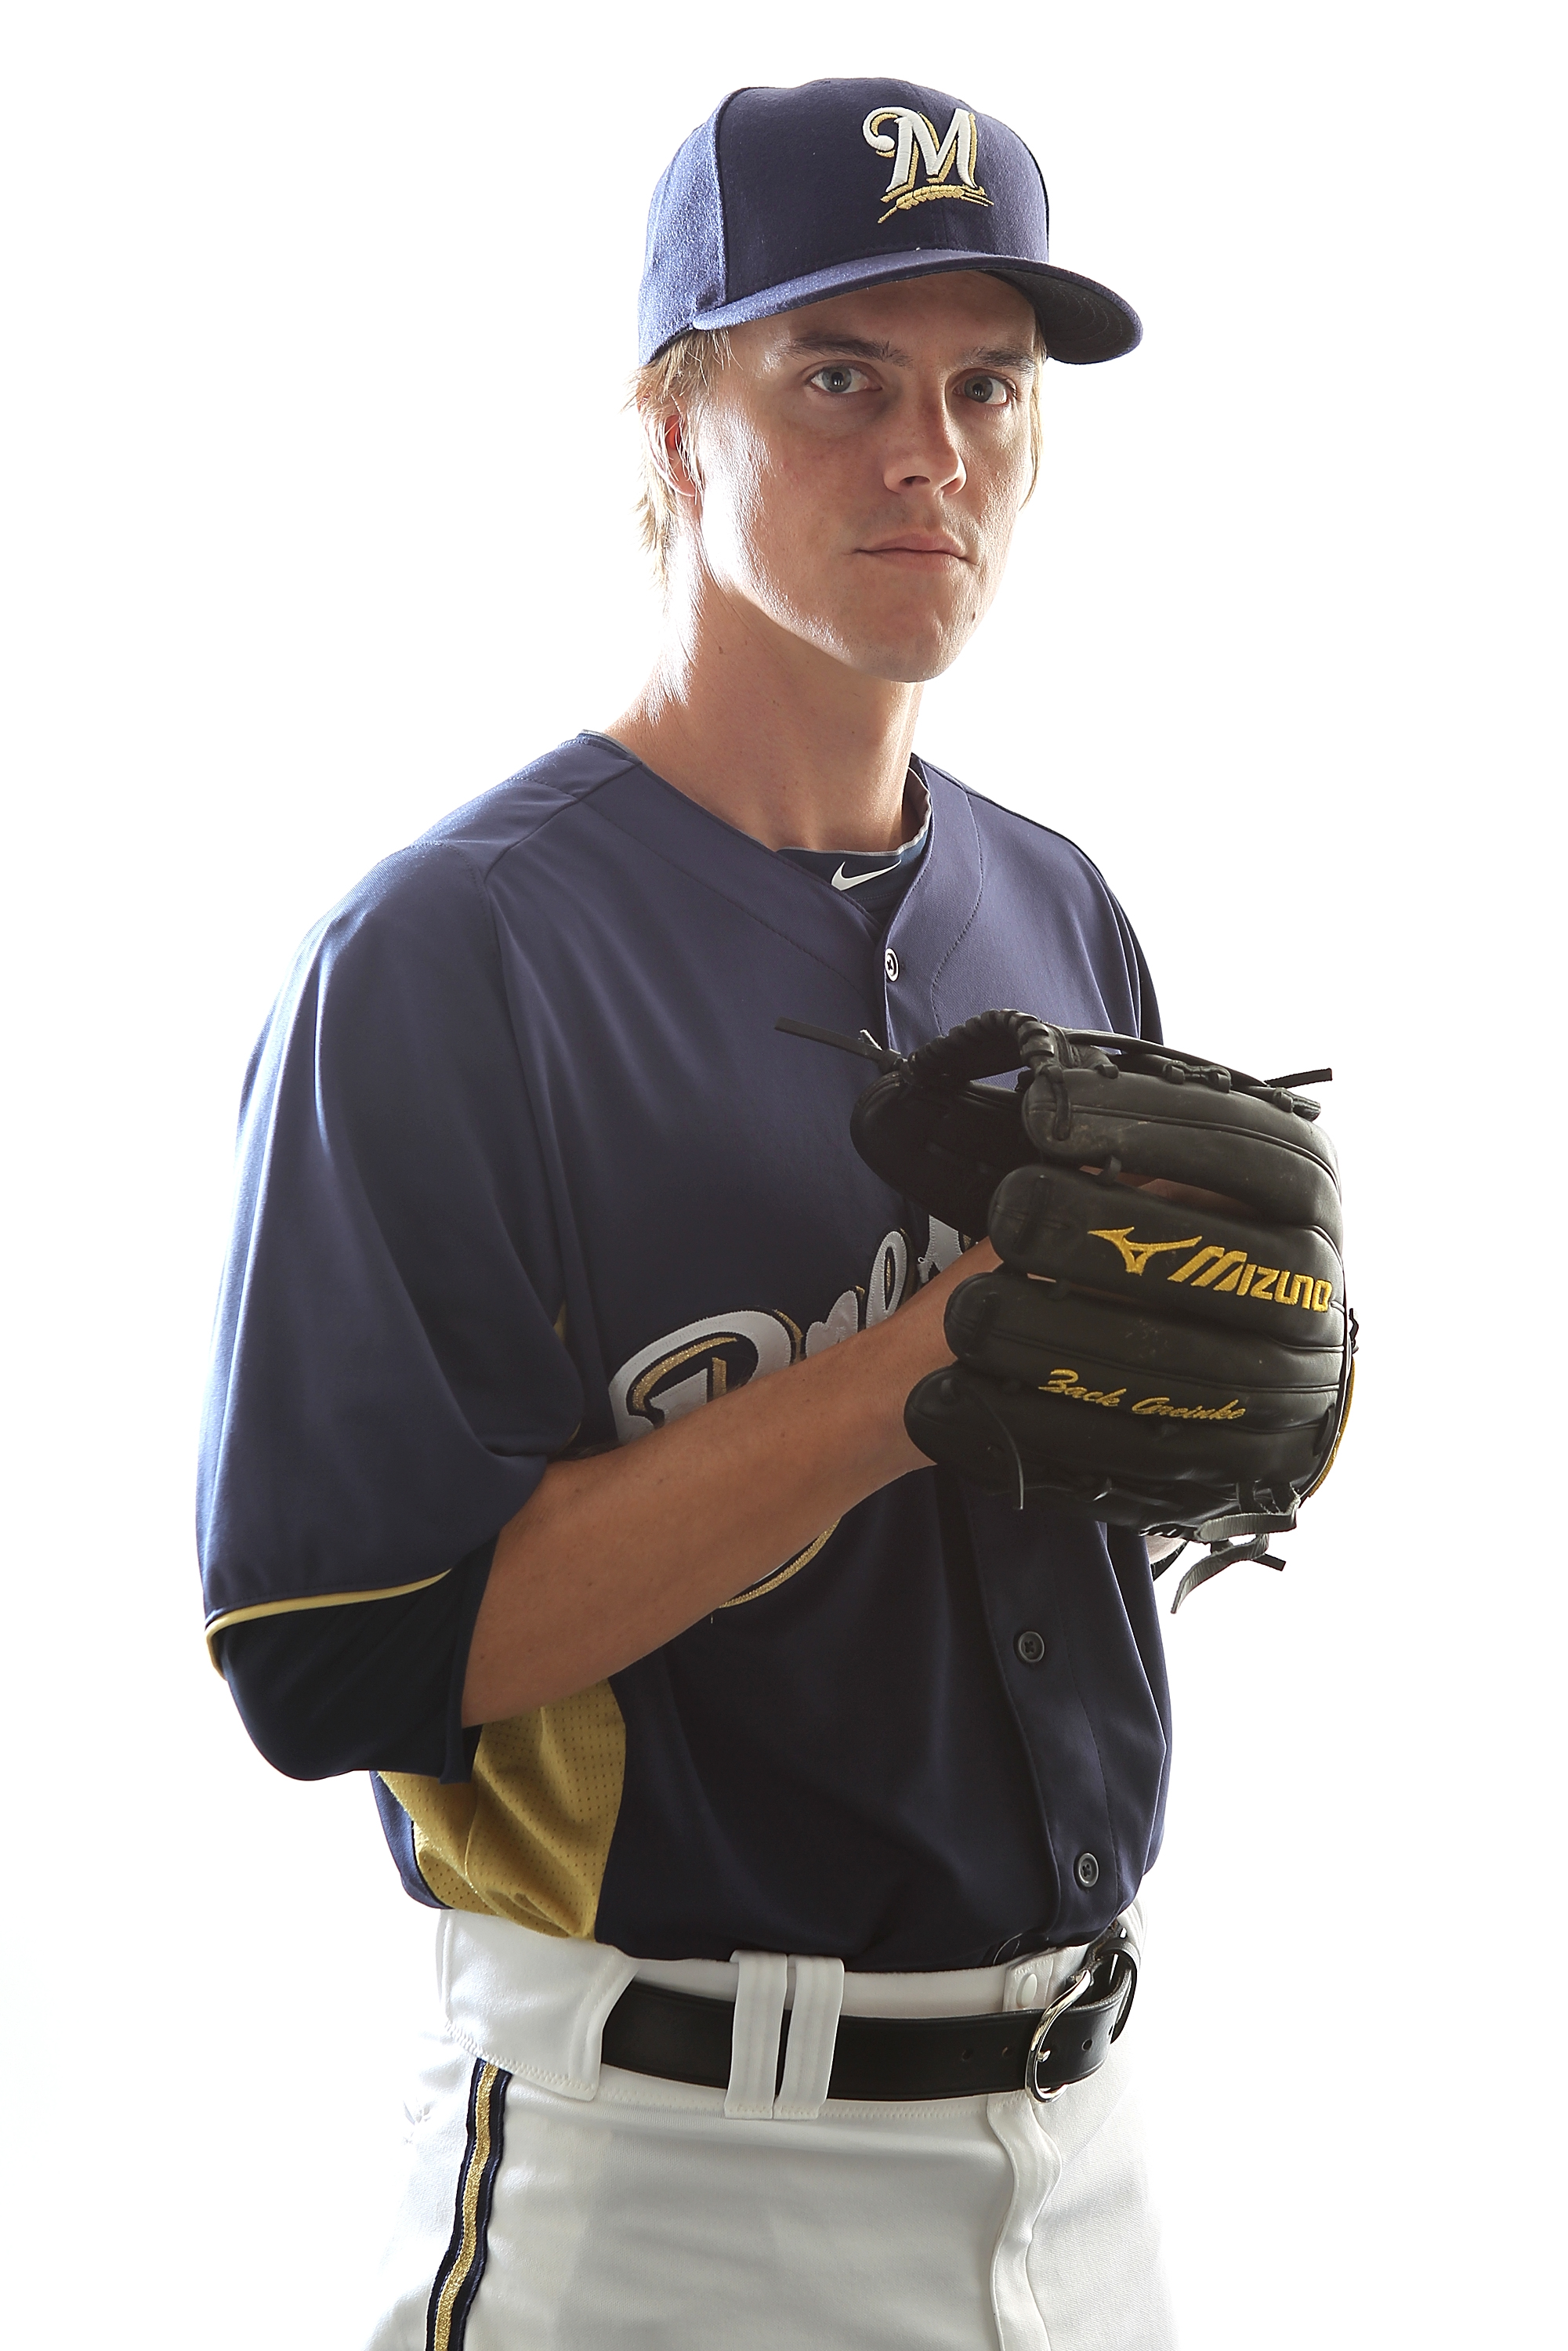 MARYVALE, AZ - FEBRUARY 24:  Zack Greinke #13 of the Milwaukee Brewers poses for a portrait during Spring Training Media Day on February 24, 2011 at Maryvale Stadium in Maryvale, Arizona.  (Photo by Jonathan Ferrey/Getty Images)